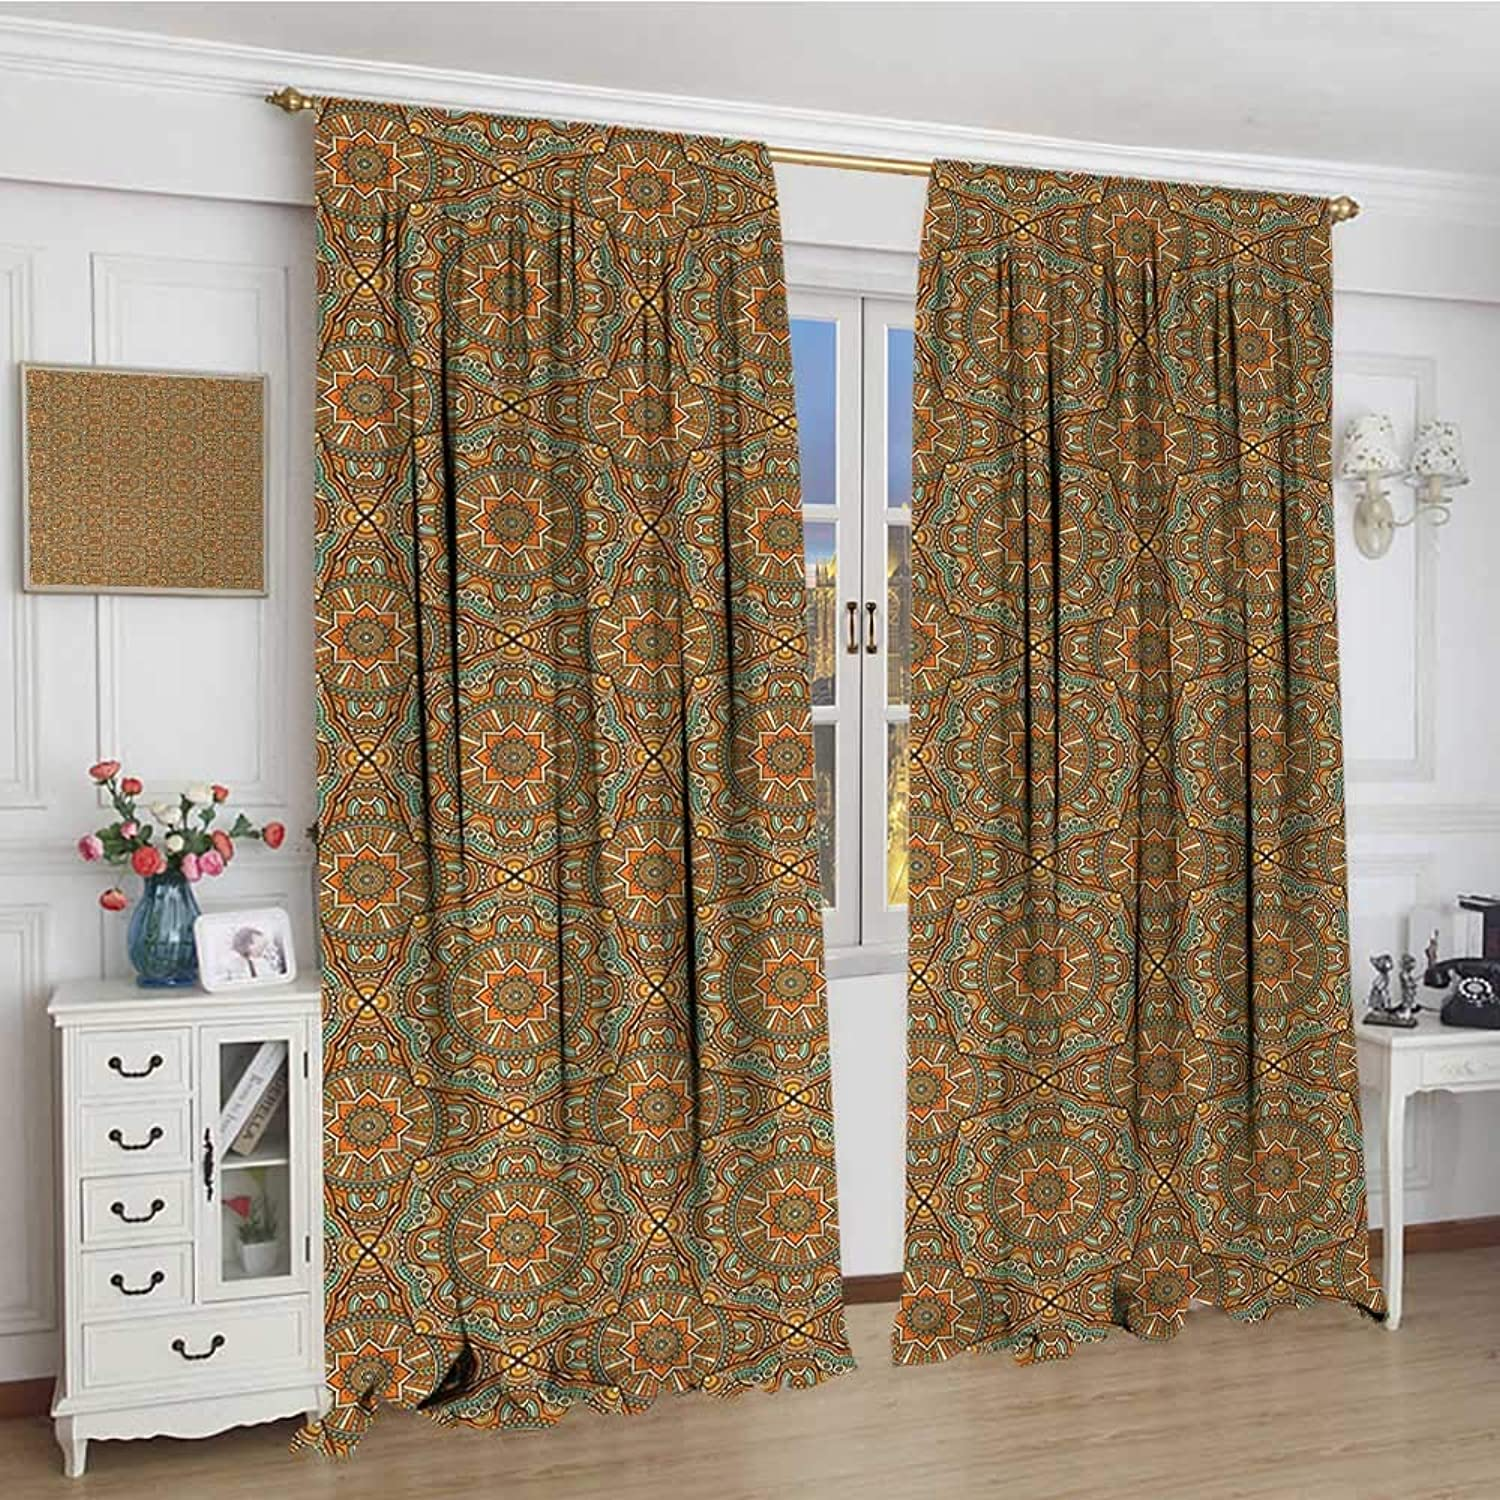 Smallbeefly Traditional Widened Room Darkening Curtains Bohemian Mgoldccan Star Ornamental Scroll Lines Curves Vintage Illustration Drapes Living Room 120 x84  Multicolor